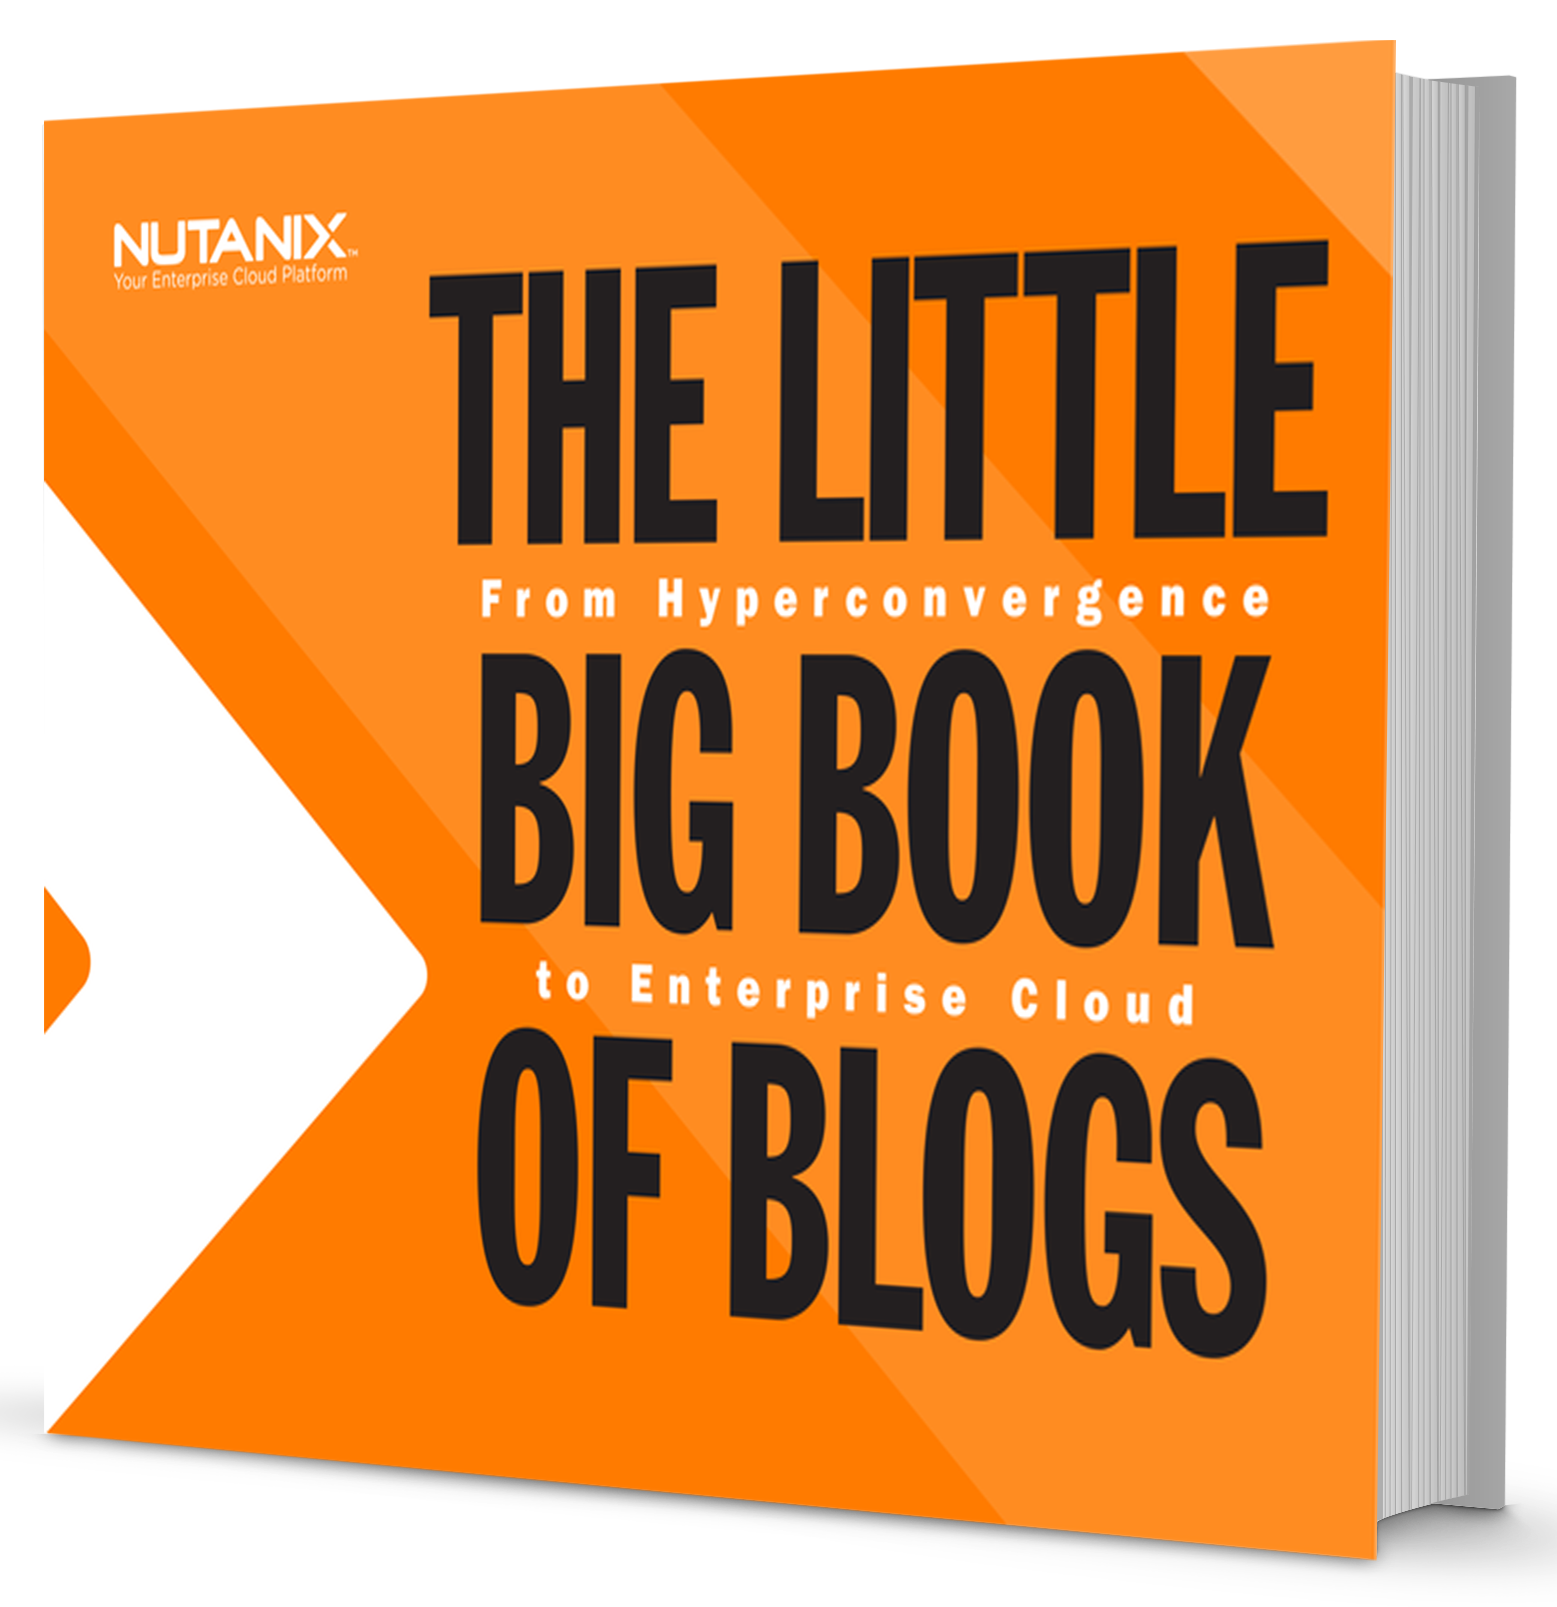 The Little Big Book Of Blogs From Hyperconvergence To The Enterprise Cloud